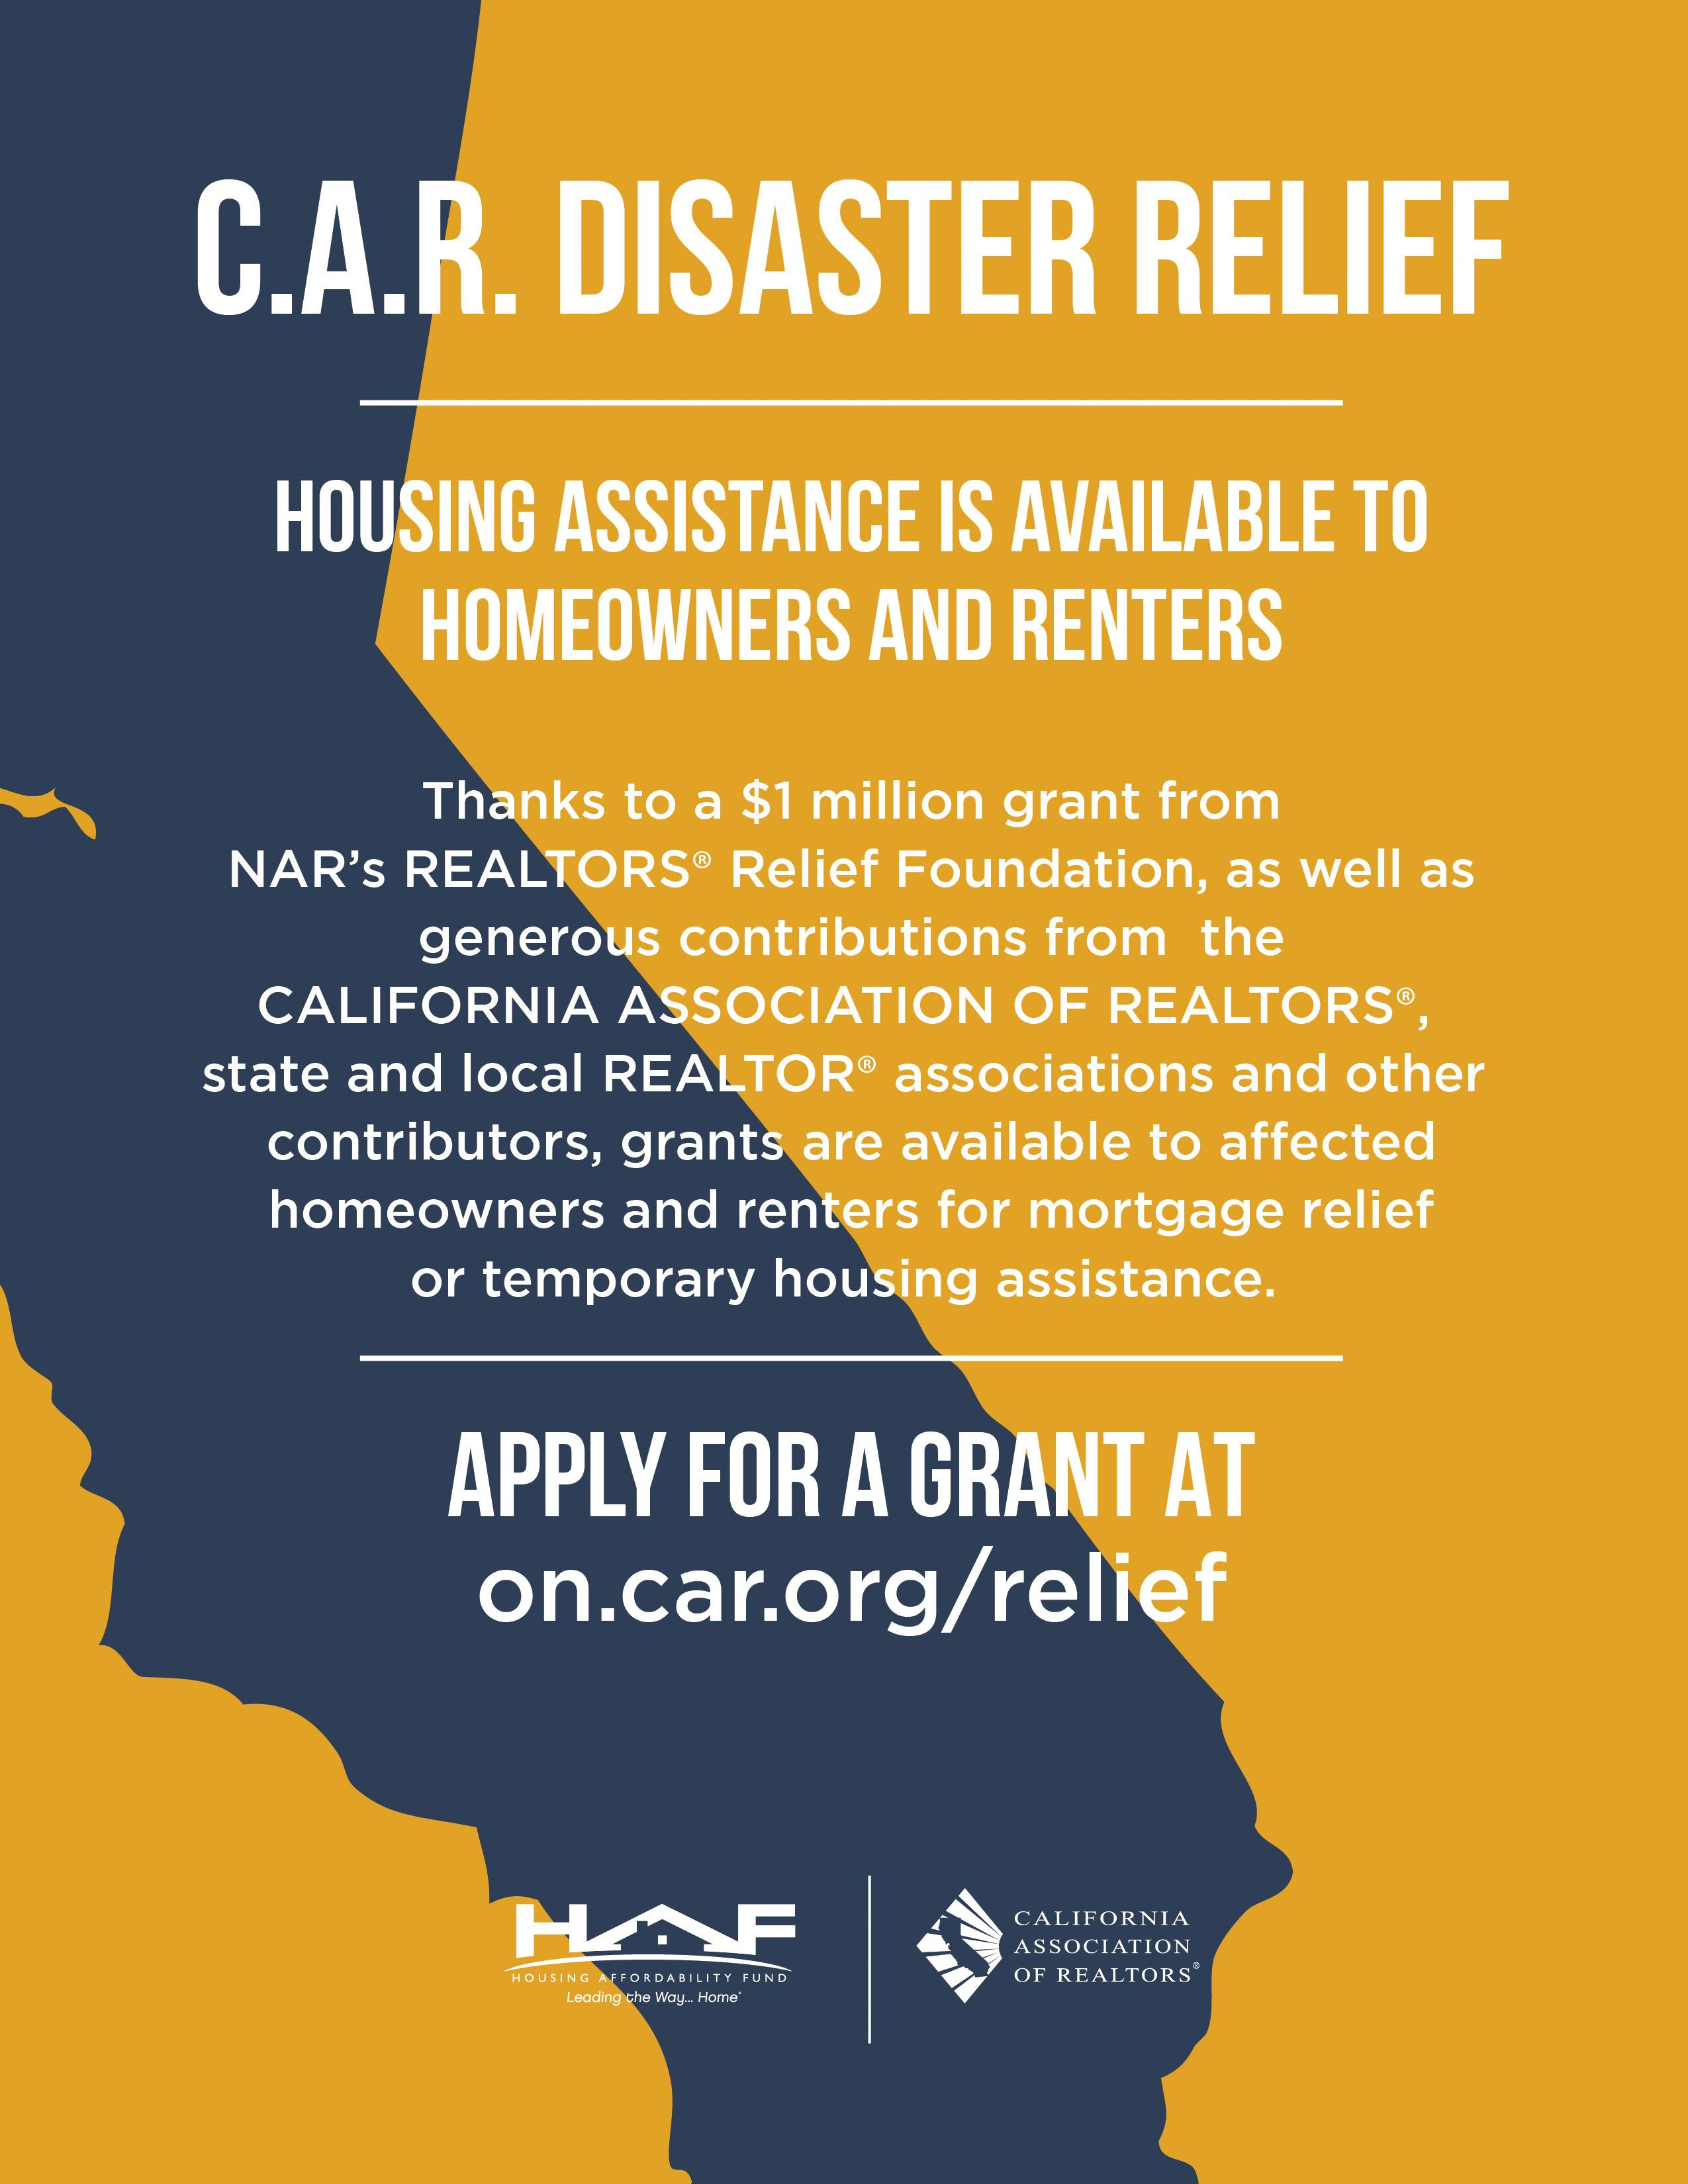 Ca Housing Grants Available For People Displaced By Fir Disaster Relief Relief Disasters